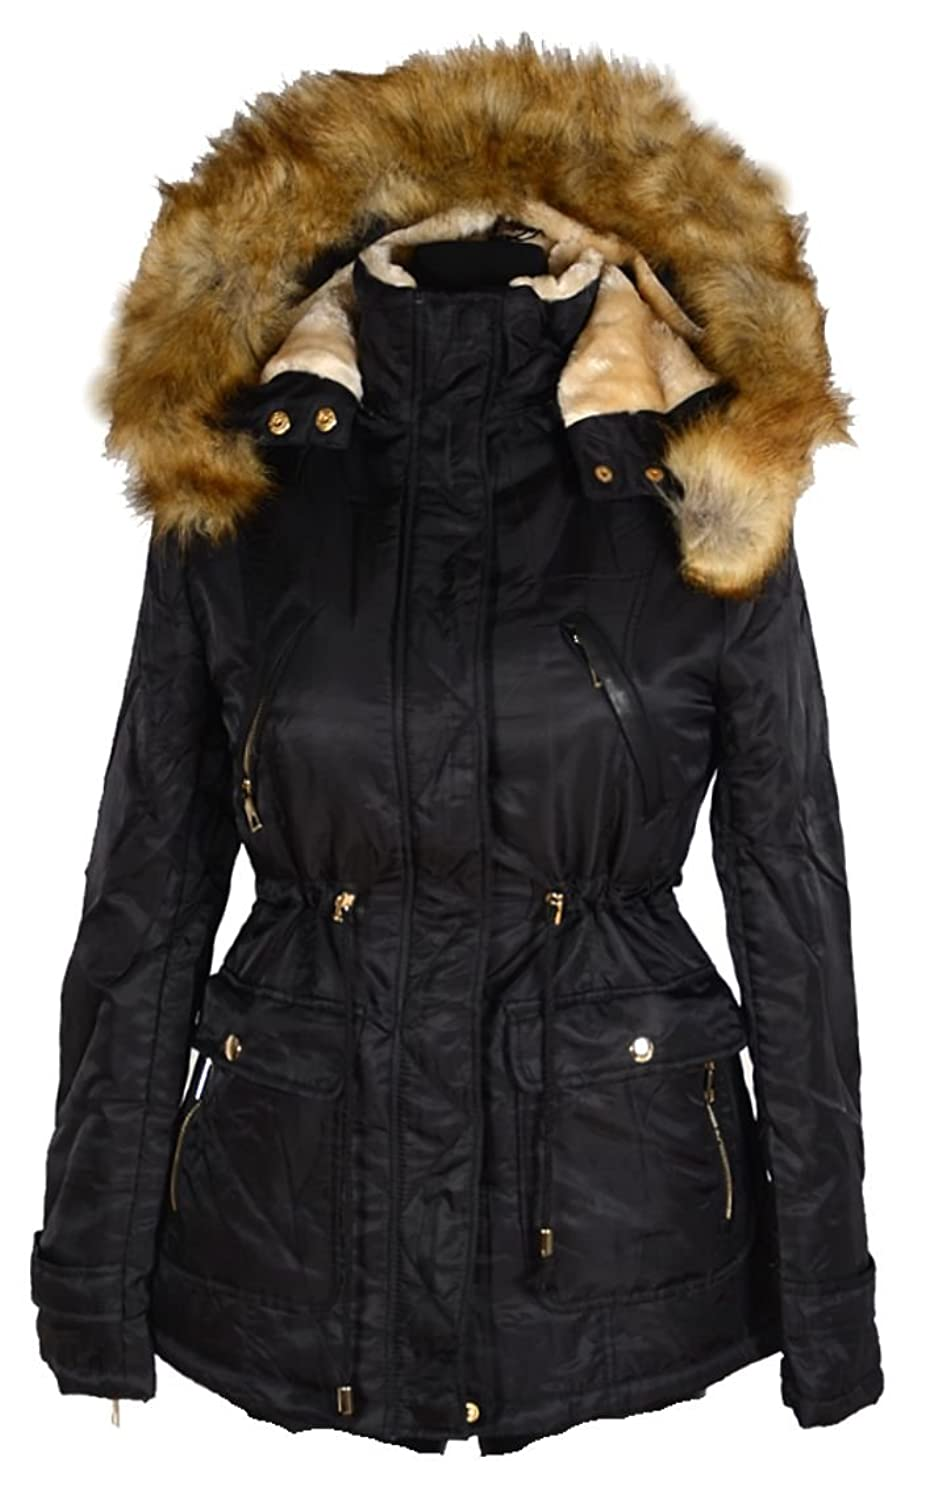 damen winterjacke parka warm gef ttert fell kapuze jacke. Black Bedroom Furniture Sets. Home Design Ideas